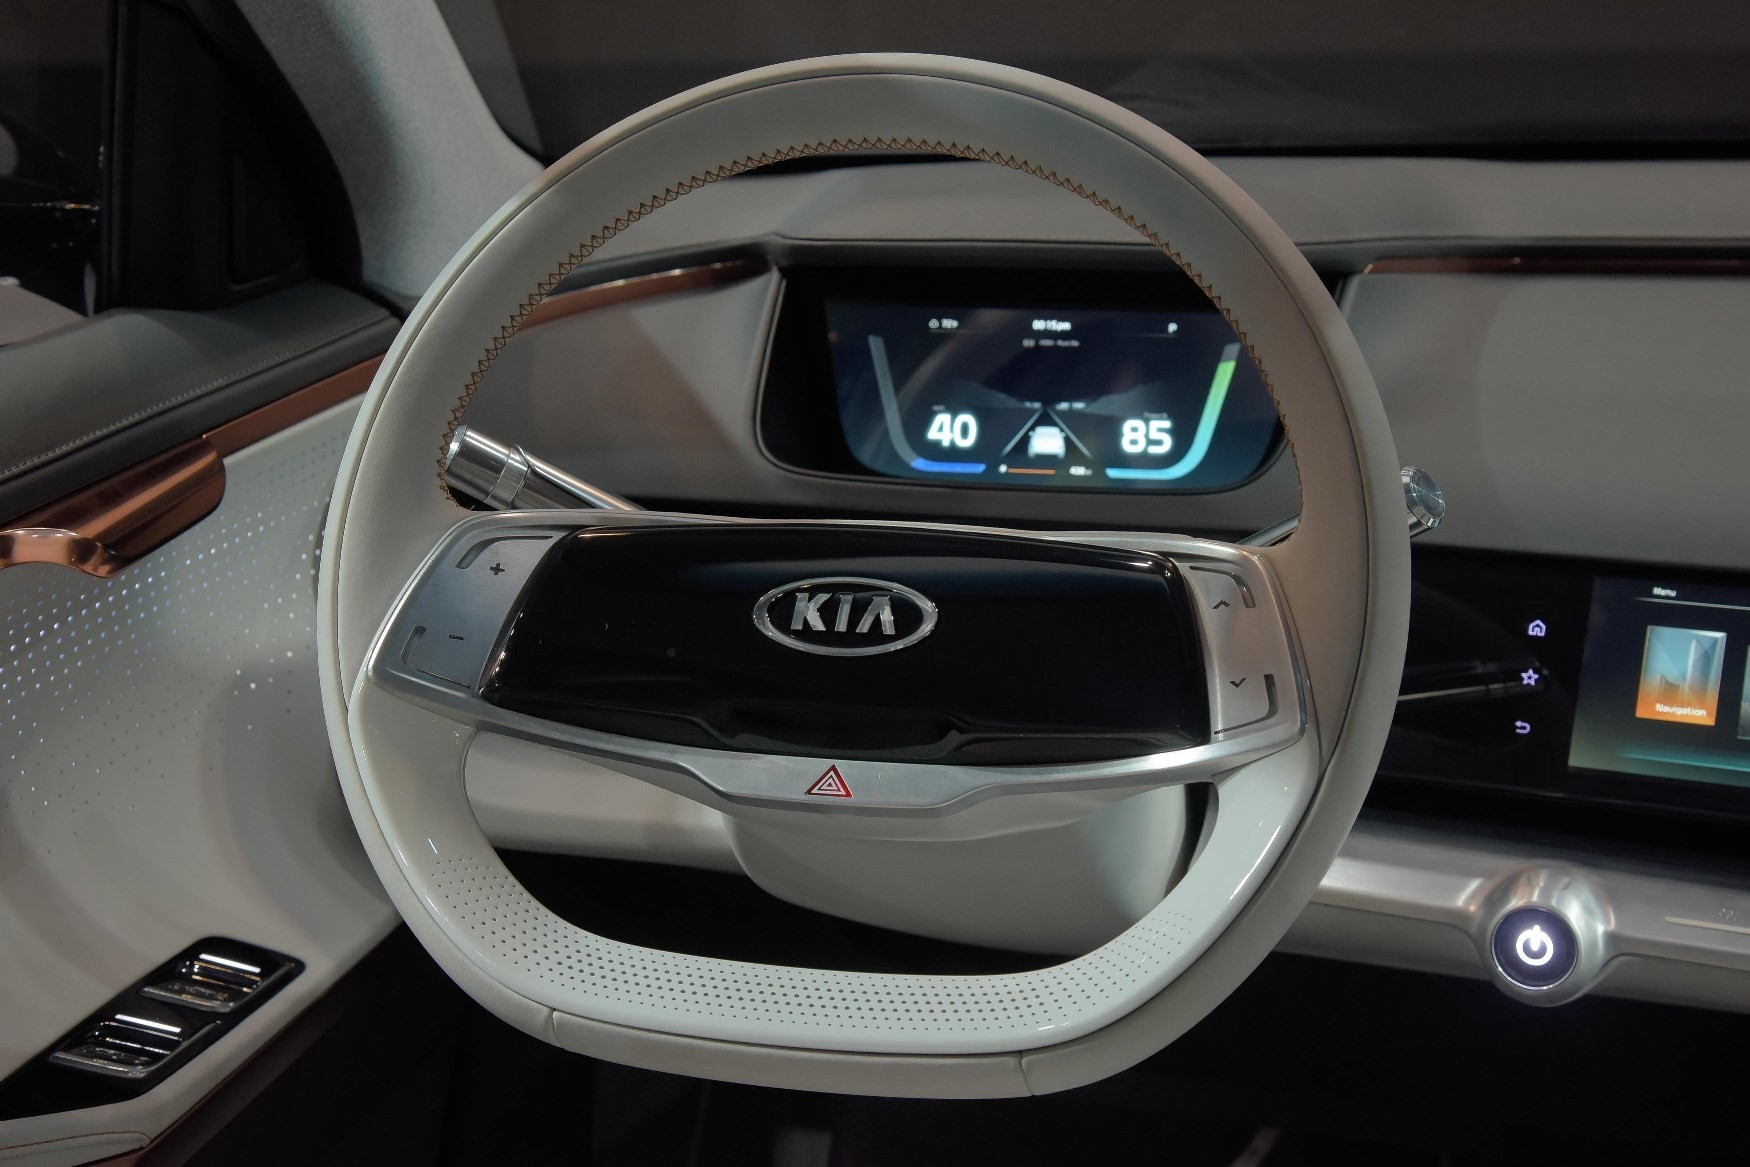 Kia Ad For 2010 Super Bowl Xliv Autoevolution